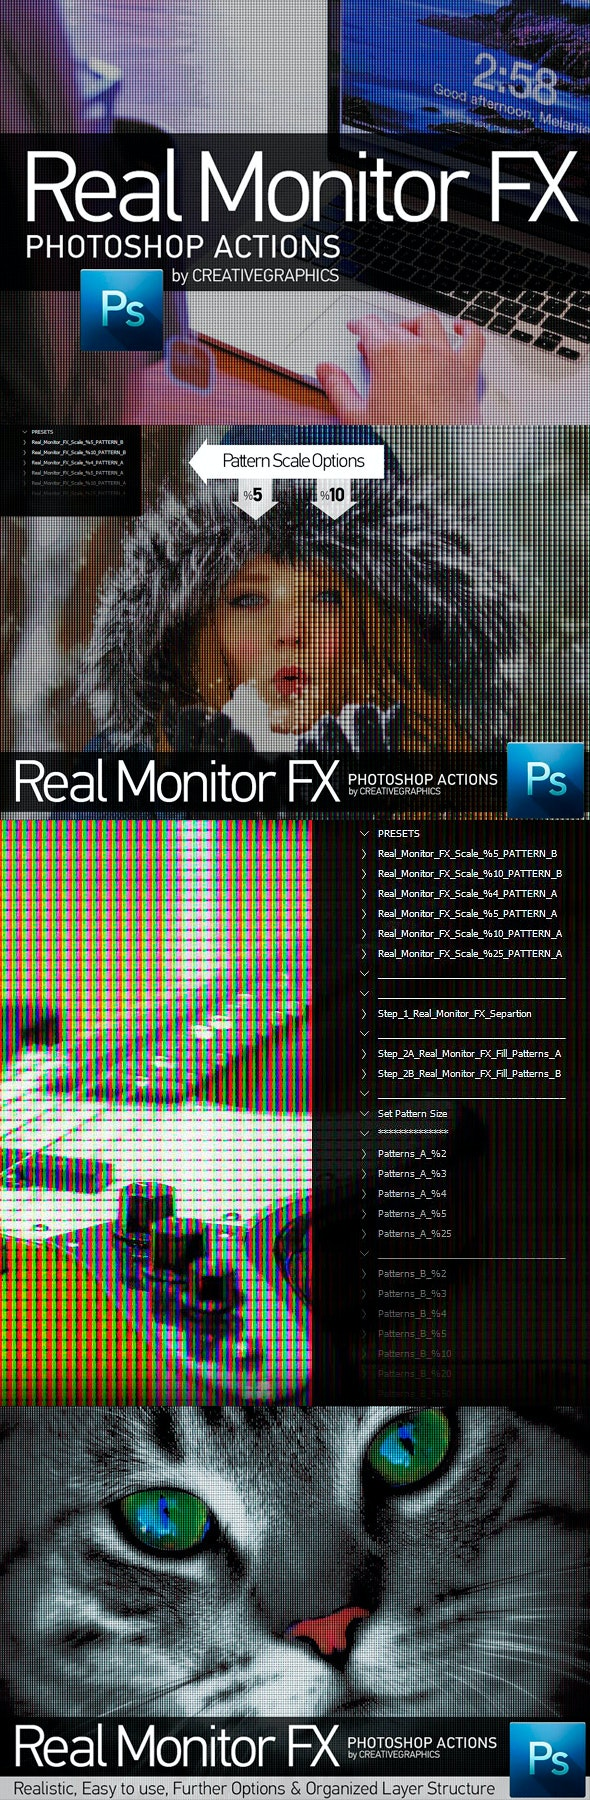 Real Monitor FX Photoshop Actions - Photo Effects Actions